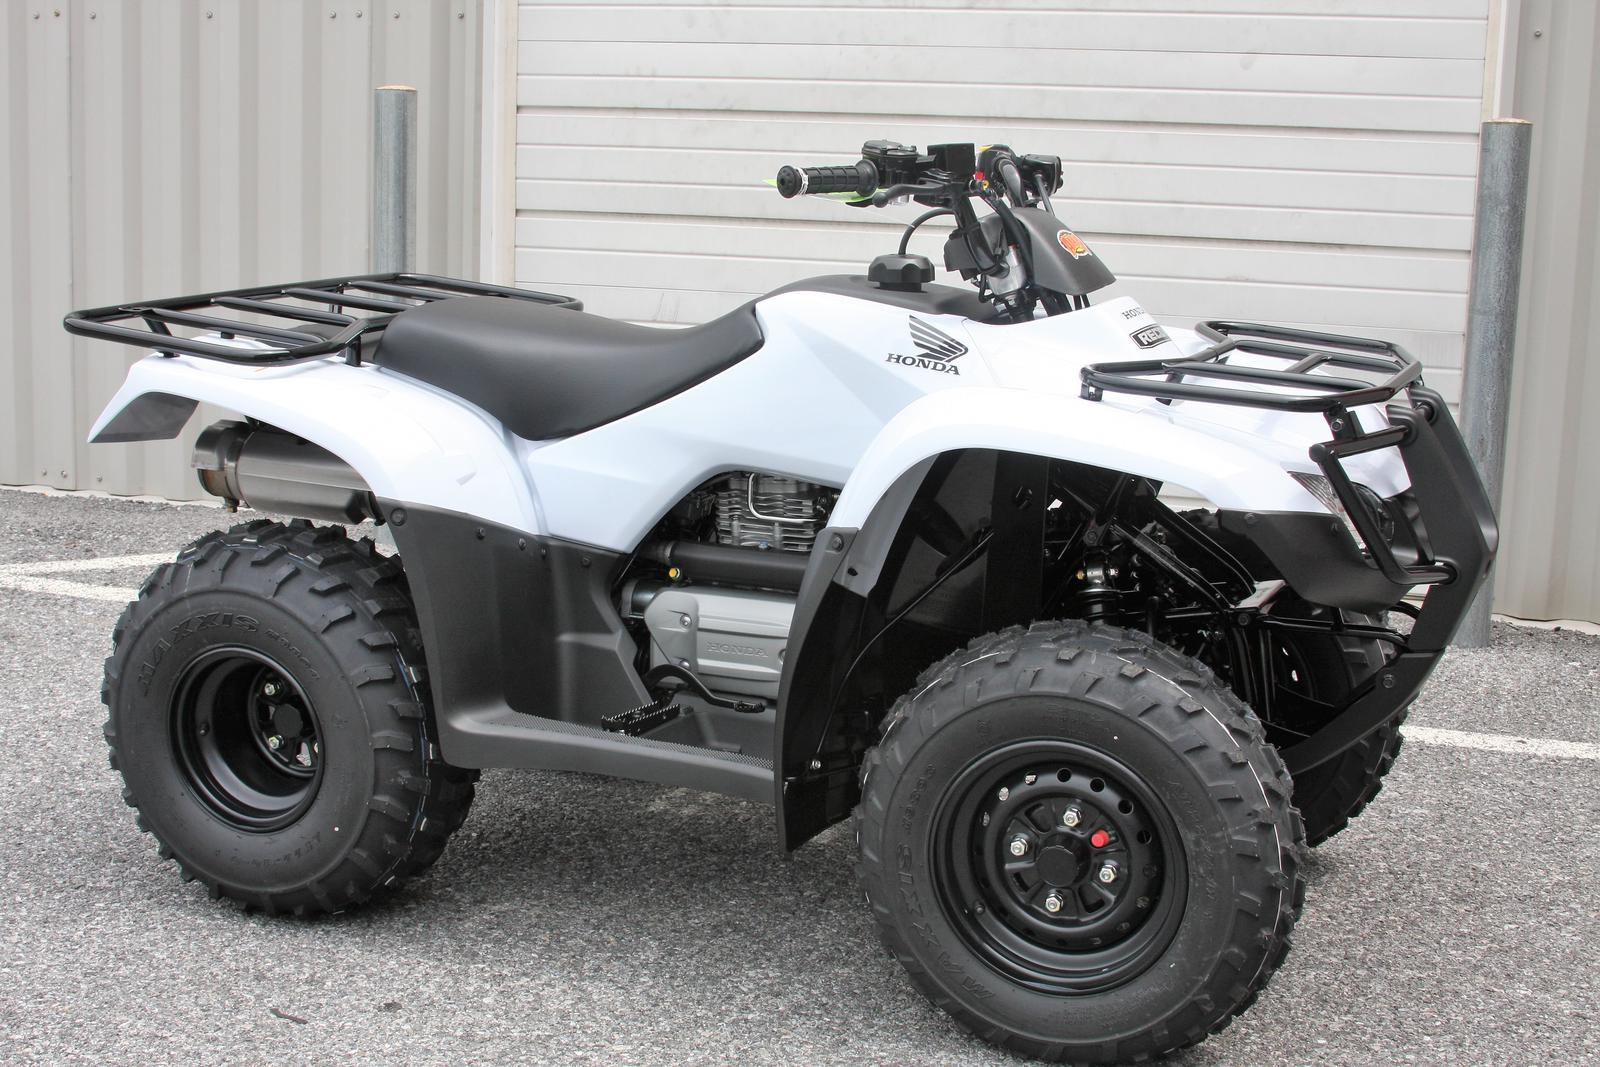 2018 honda recon for sale in york, pa ams action motorsports yorkHonda Recon Fuel Filter Location #7